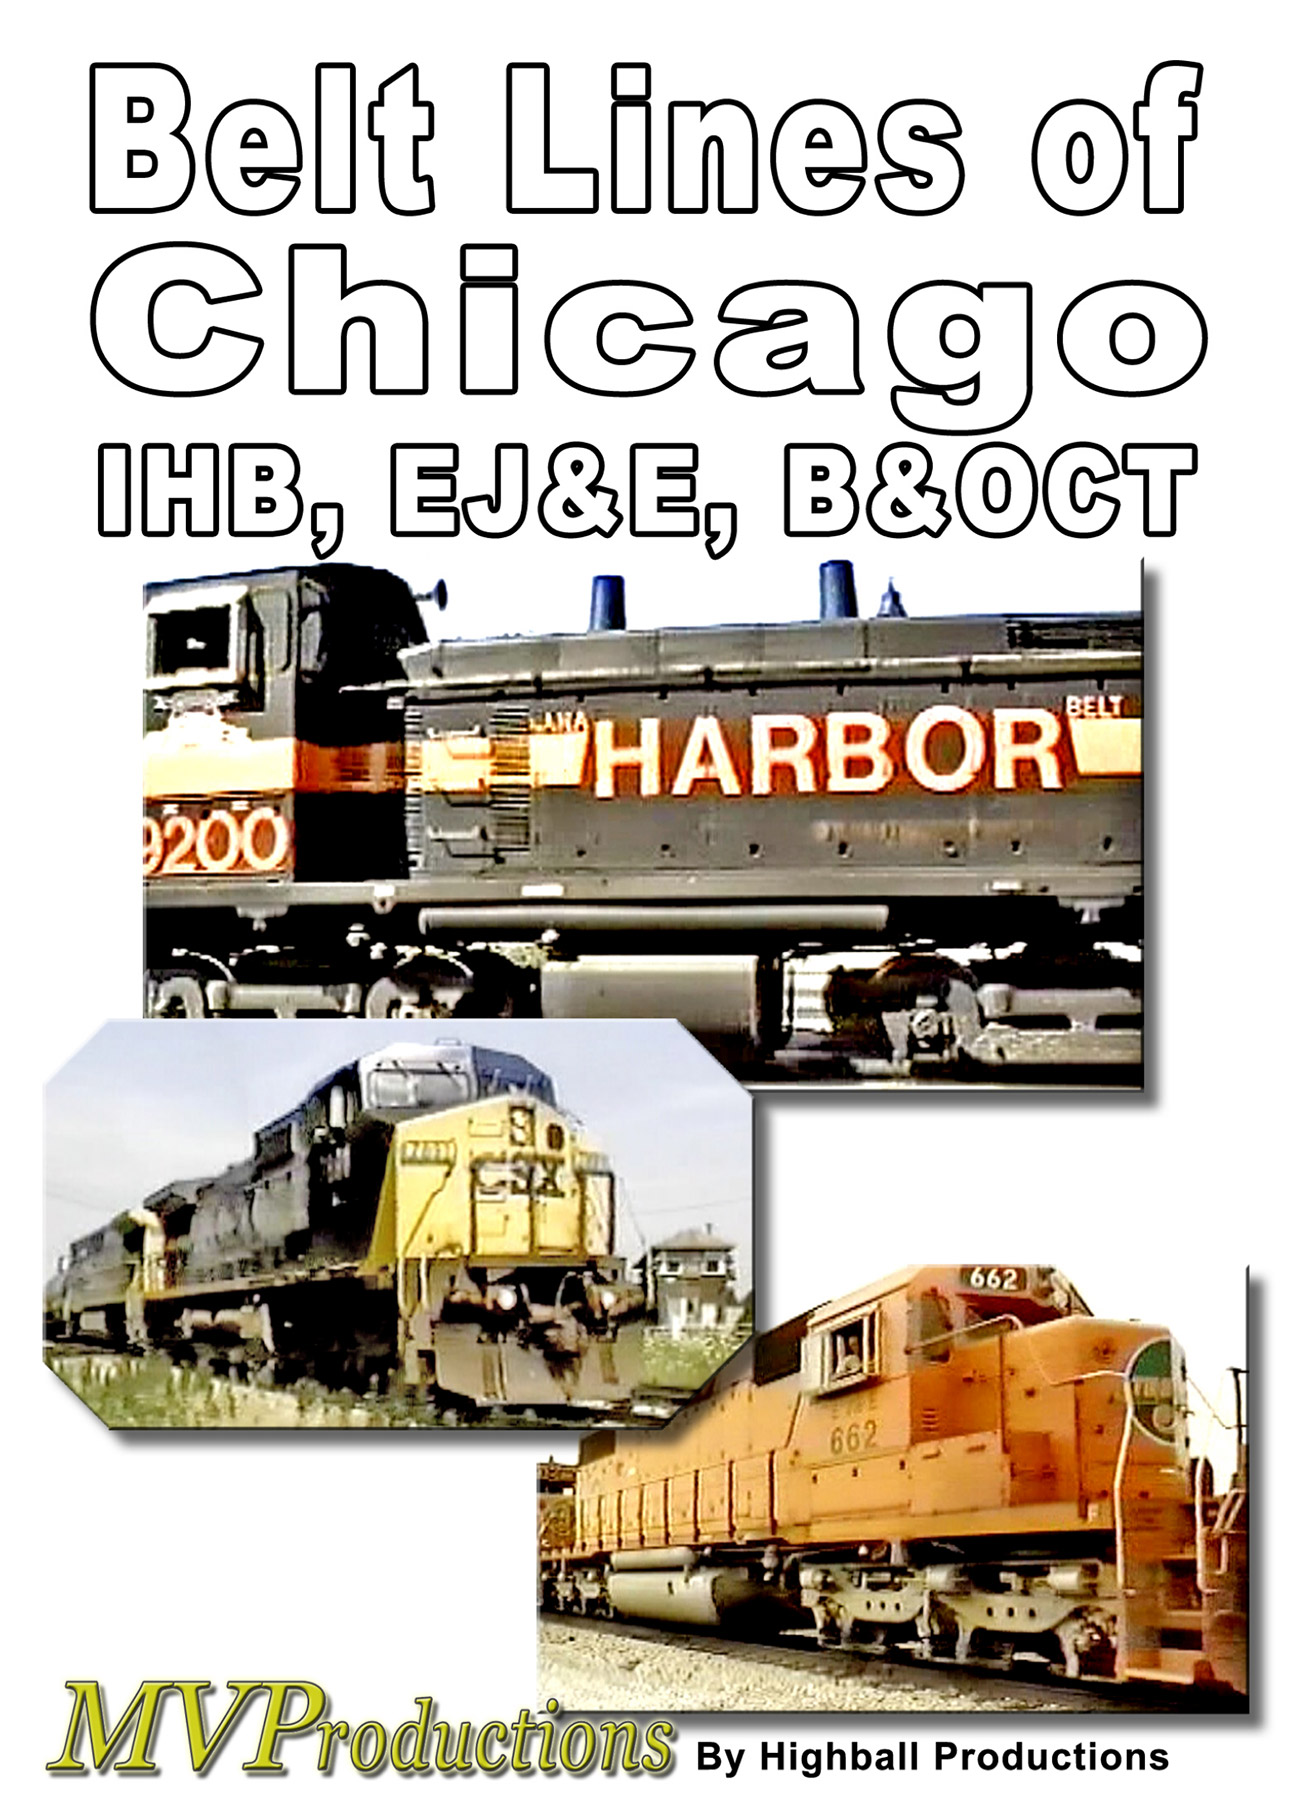 Belt Lines of Chicago Train Video Midwest Video Productions MVBLOC 601577880226